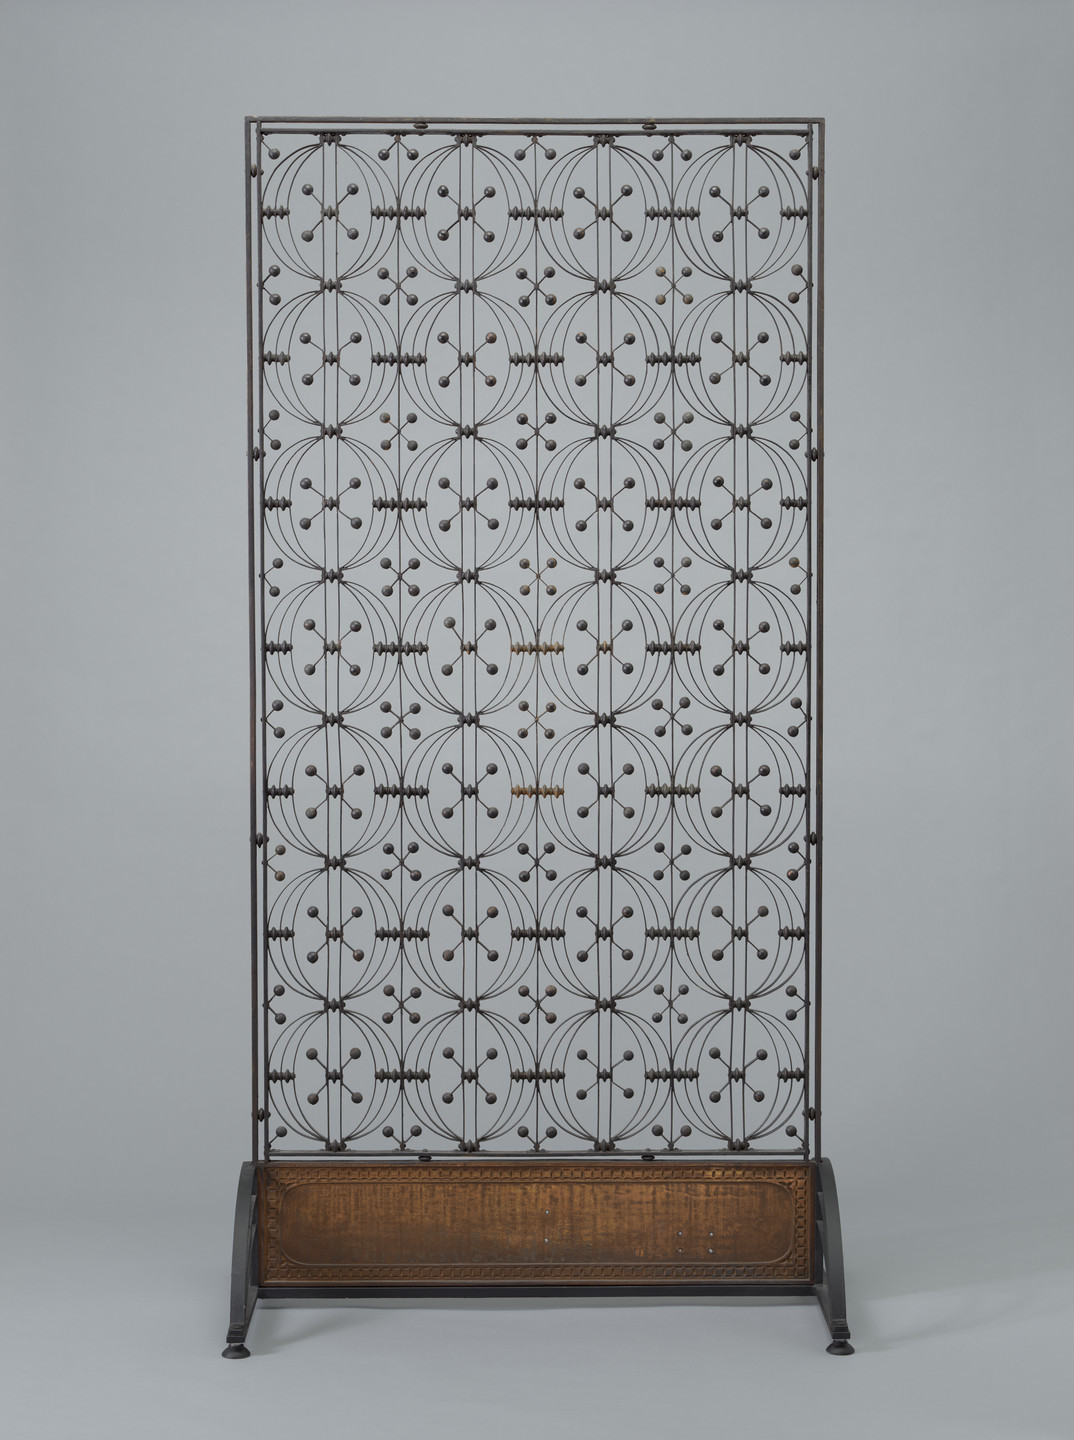 Louis Sullivan. Elevator Grille from the Chicago Stock Exchange, Chicago, IL. 1893